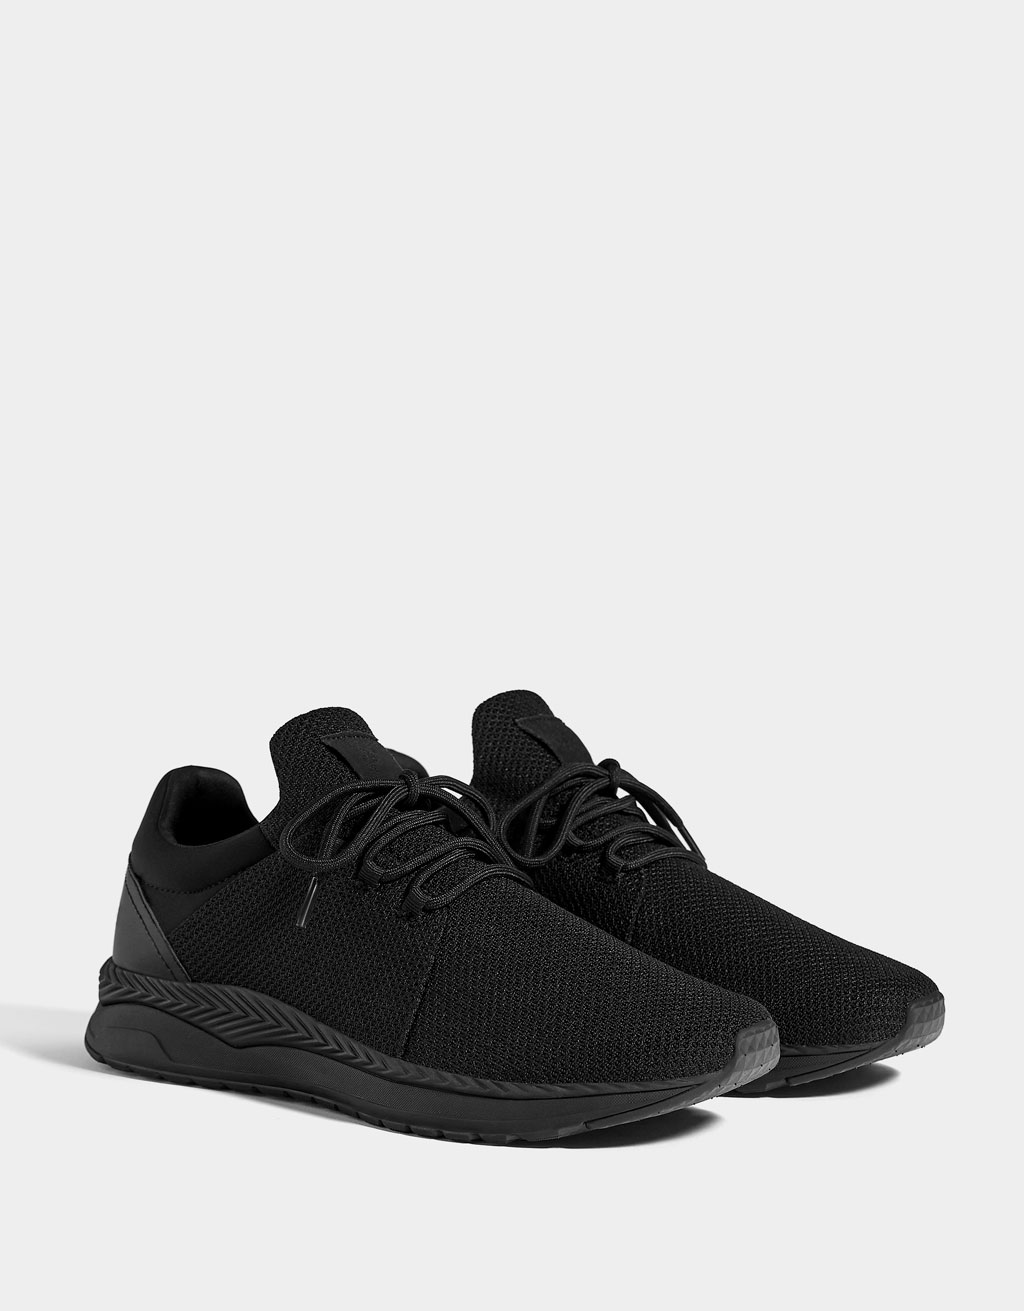 Men's mesh sock-style sneakers